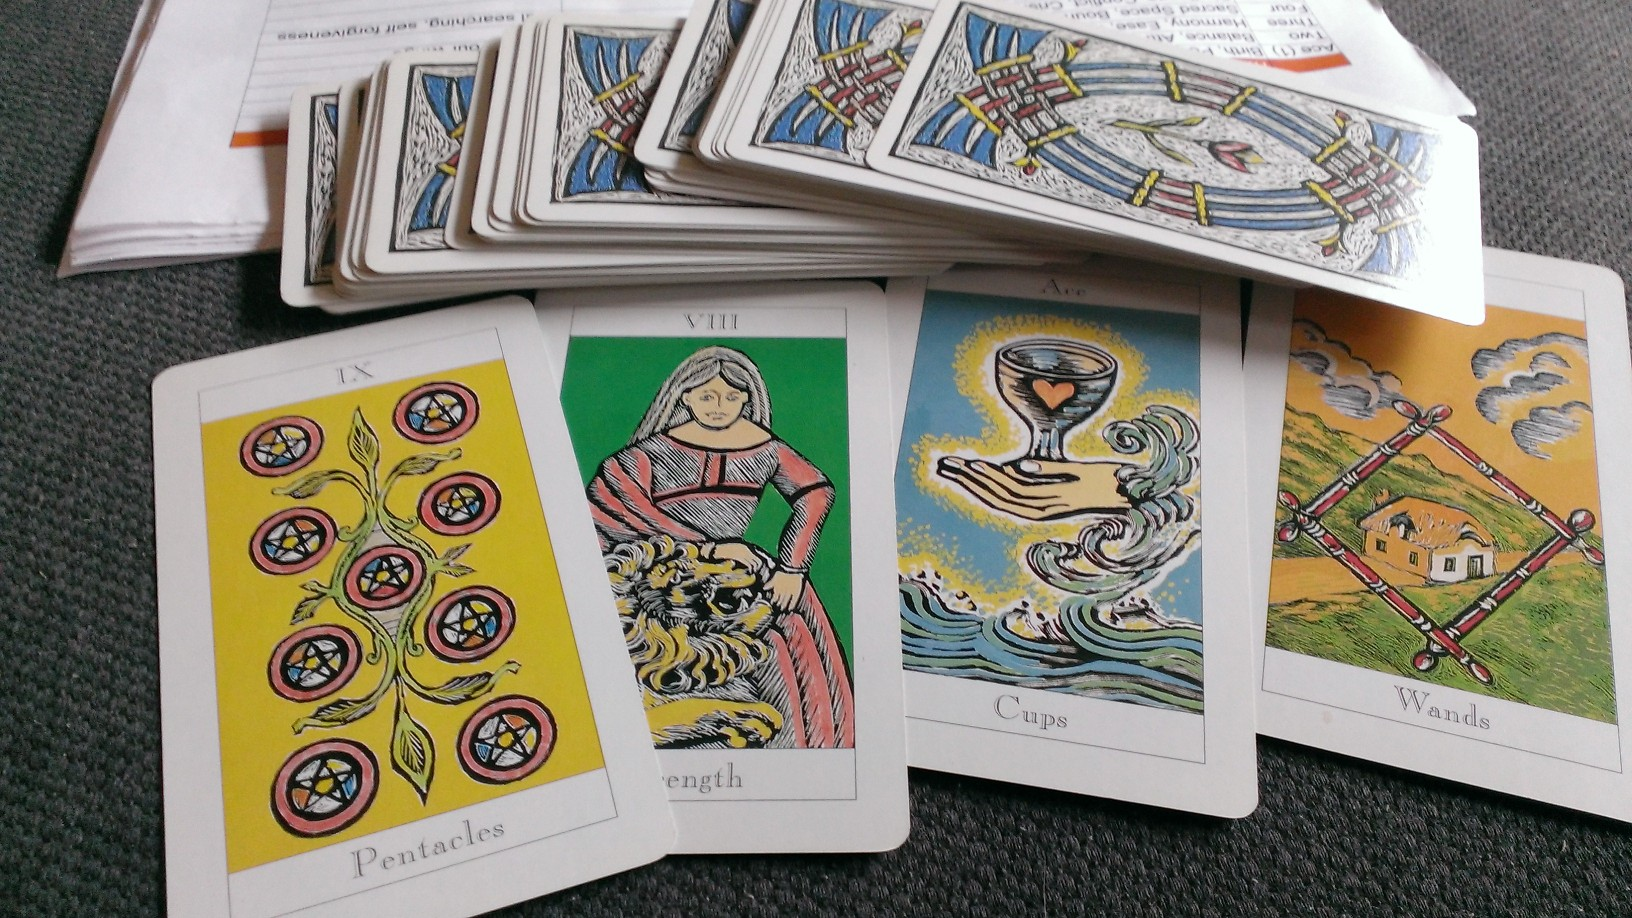 Who knows what ‪‎Tarot‬ deck is this?